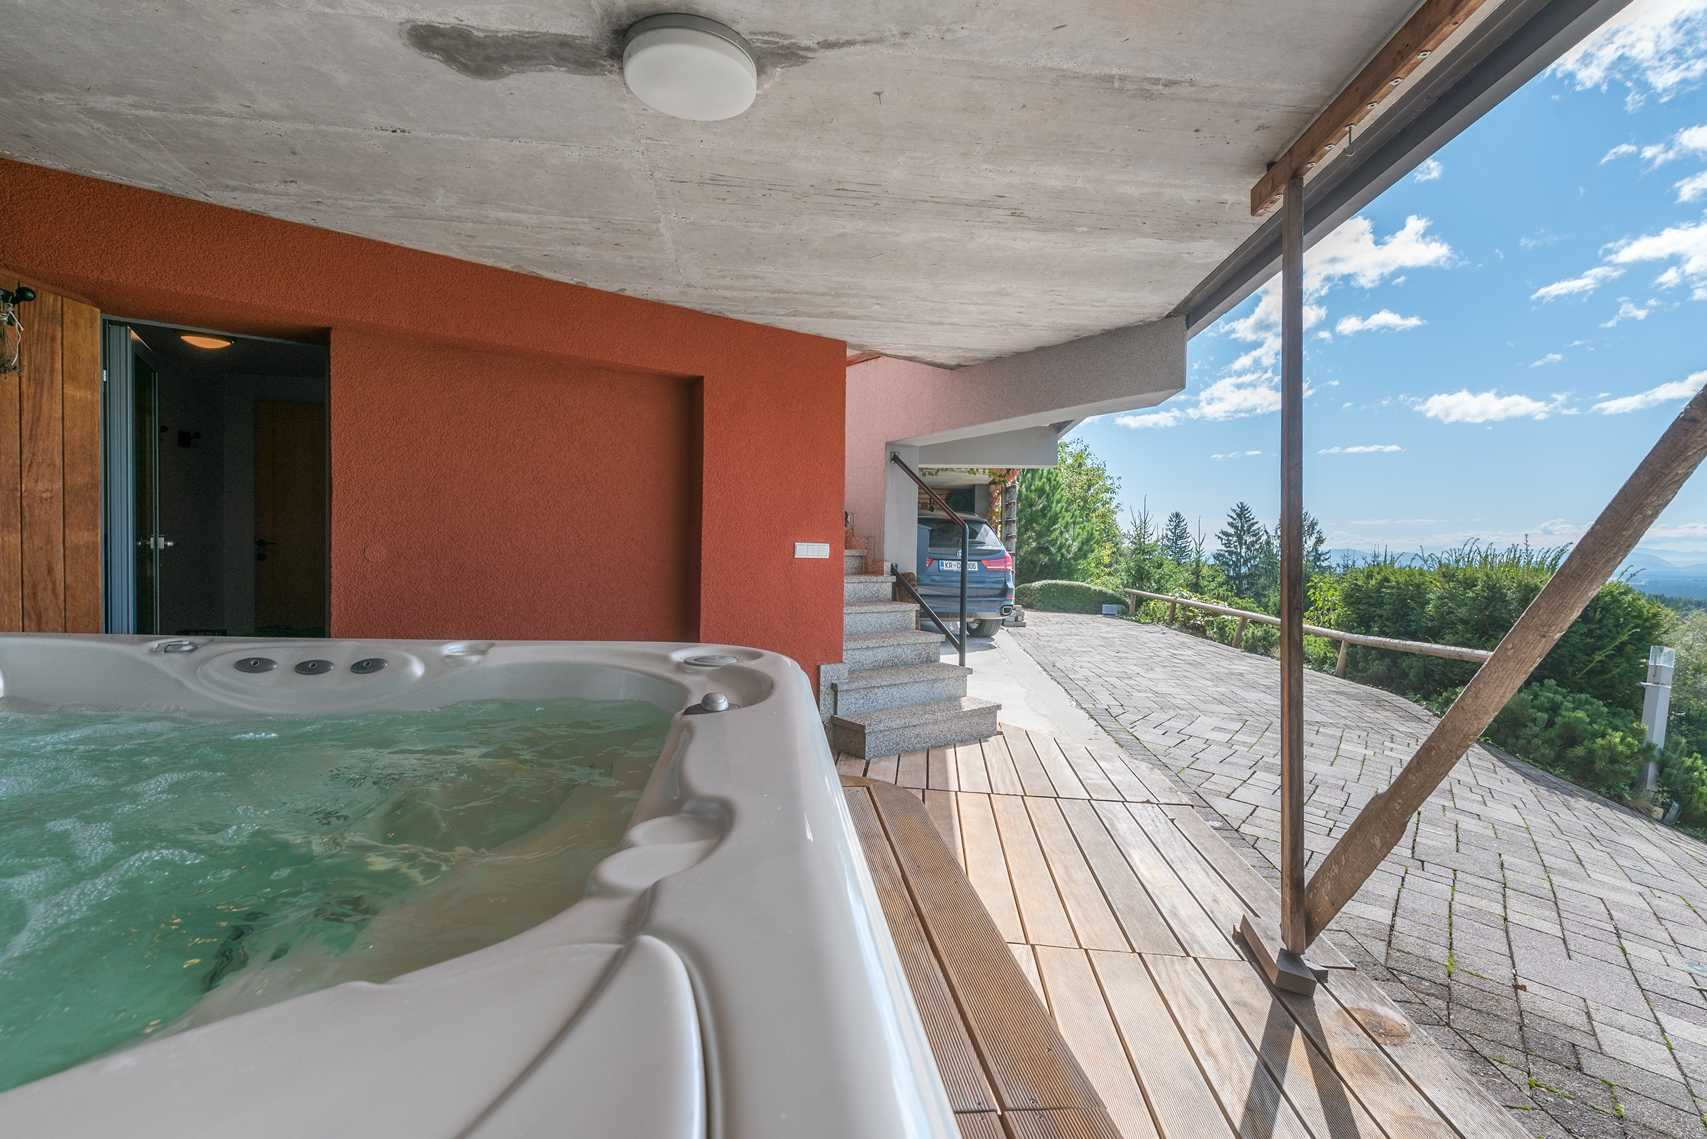 The jacuzzi is under a roof so you can enjoy it even in the summer rain.